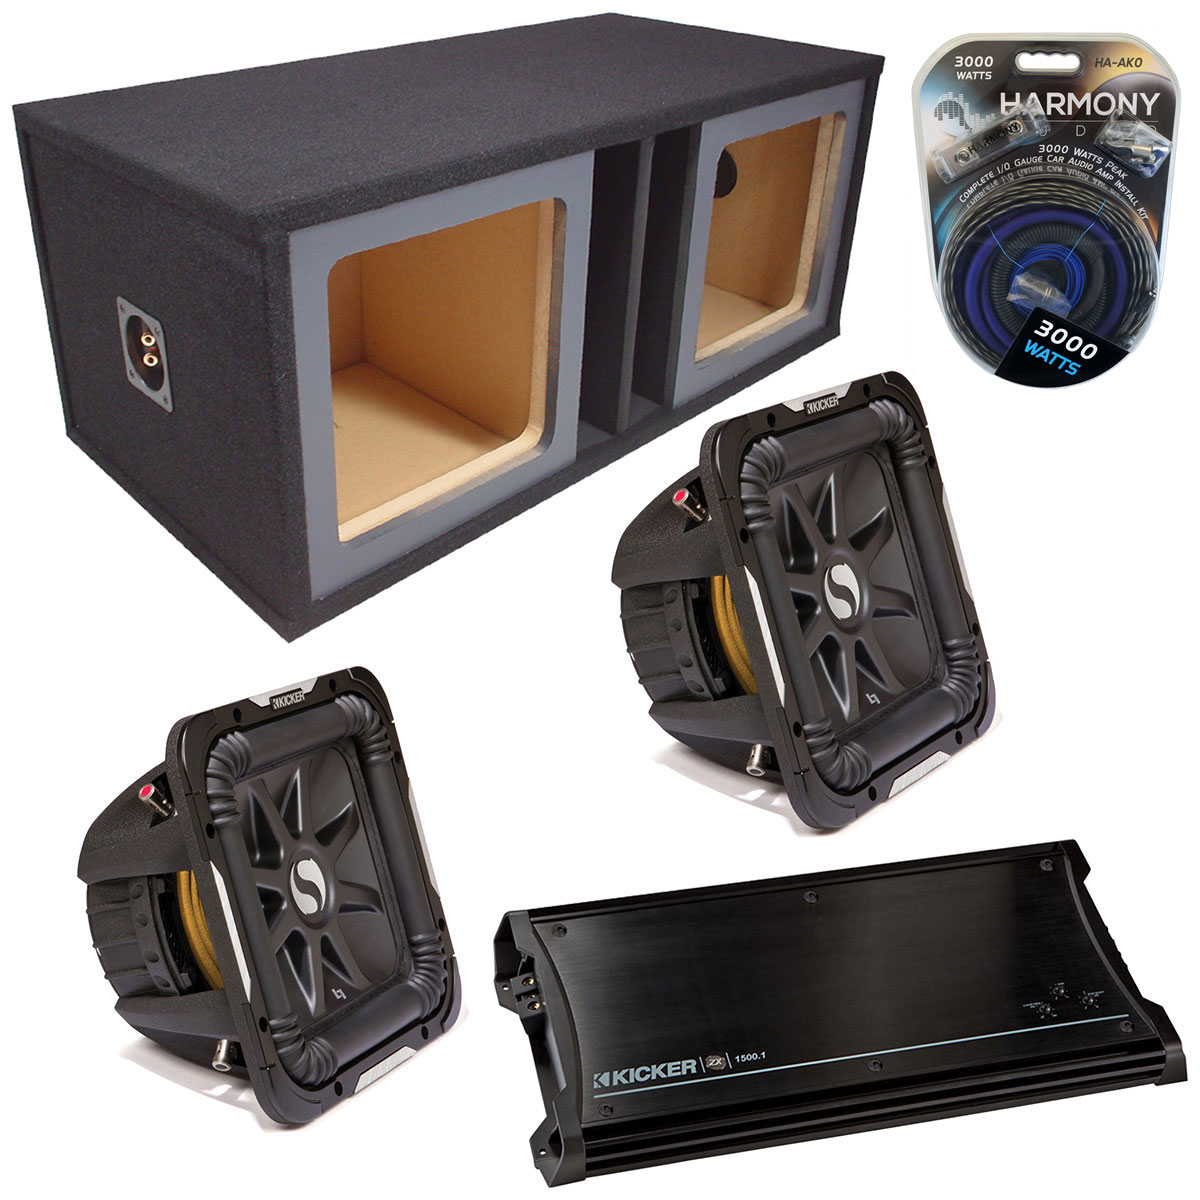 "Kicker Car Stereo Loaded Dual 15"" Square Custom S15L7 L7 Vented Subwoofer Enclosure Sub box with ZX1500.1 Amplifier & 1/0GA Amp Kit"